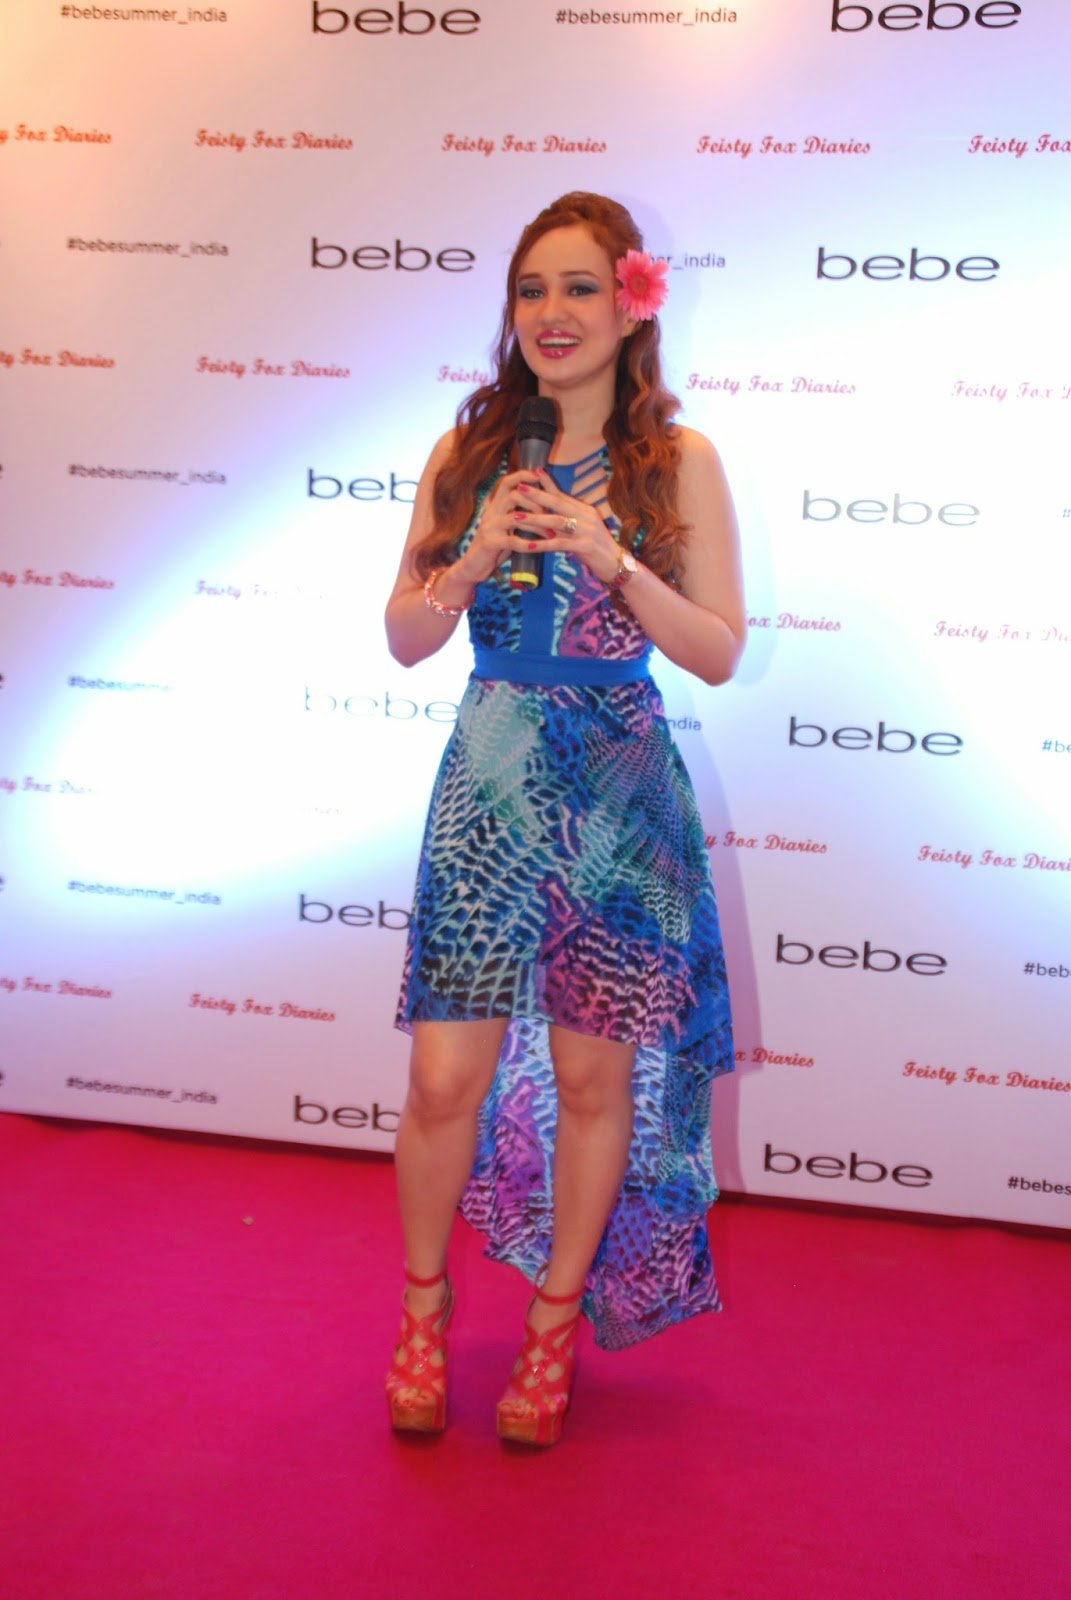 Stephanie Timmins host at Bebe Tropic Rendezvous Event, Mumbai